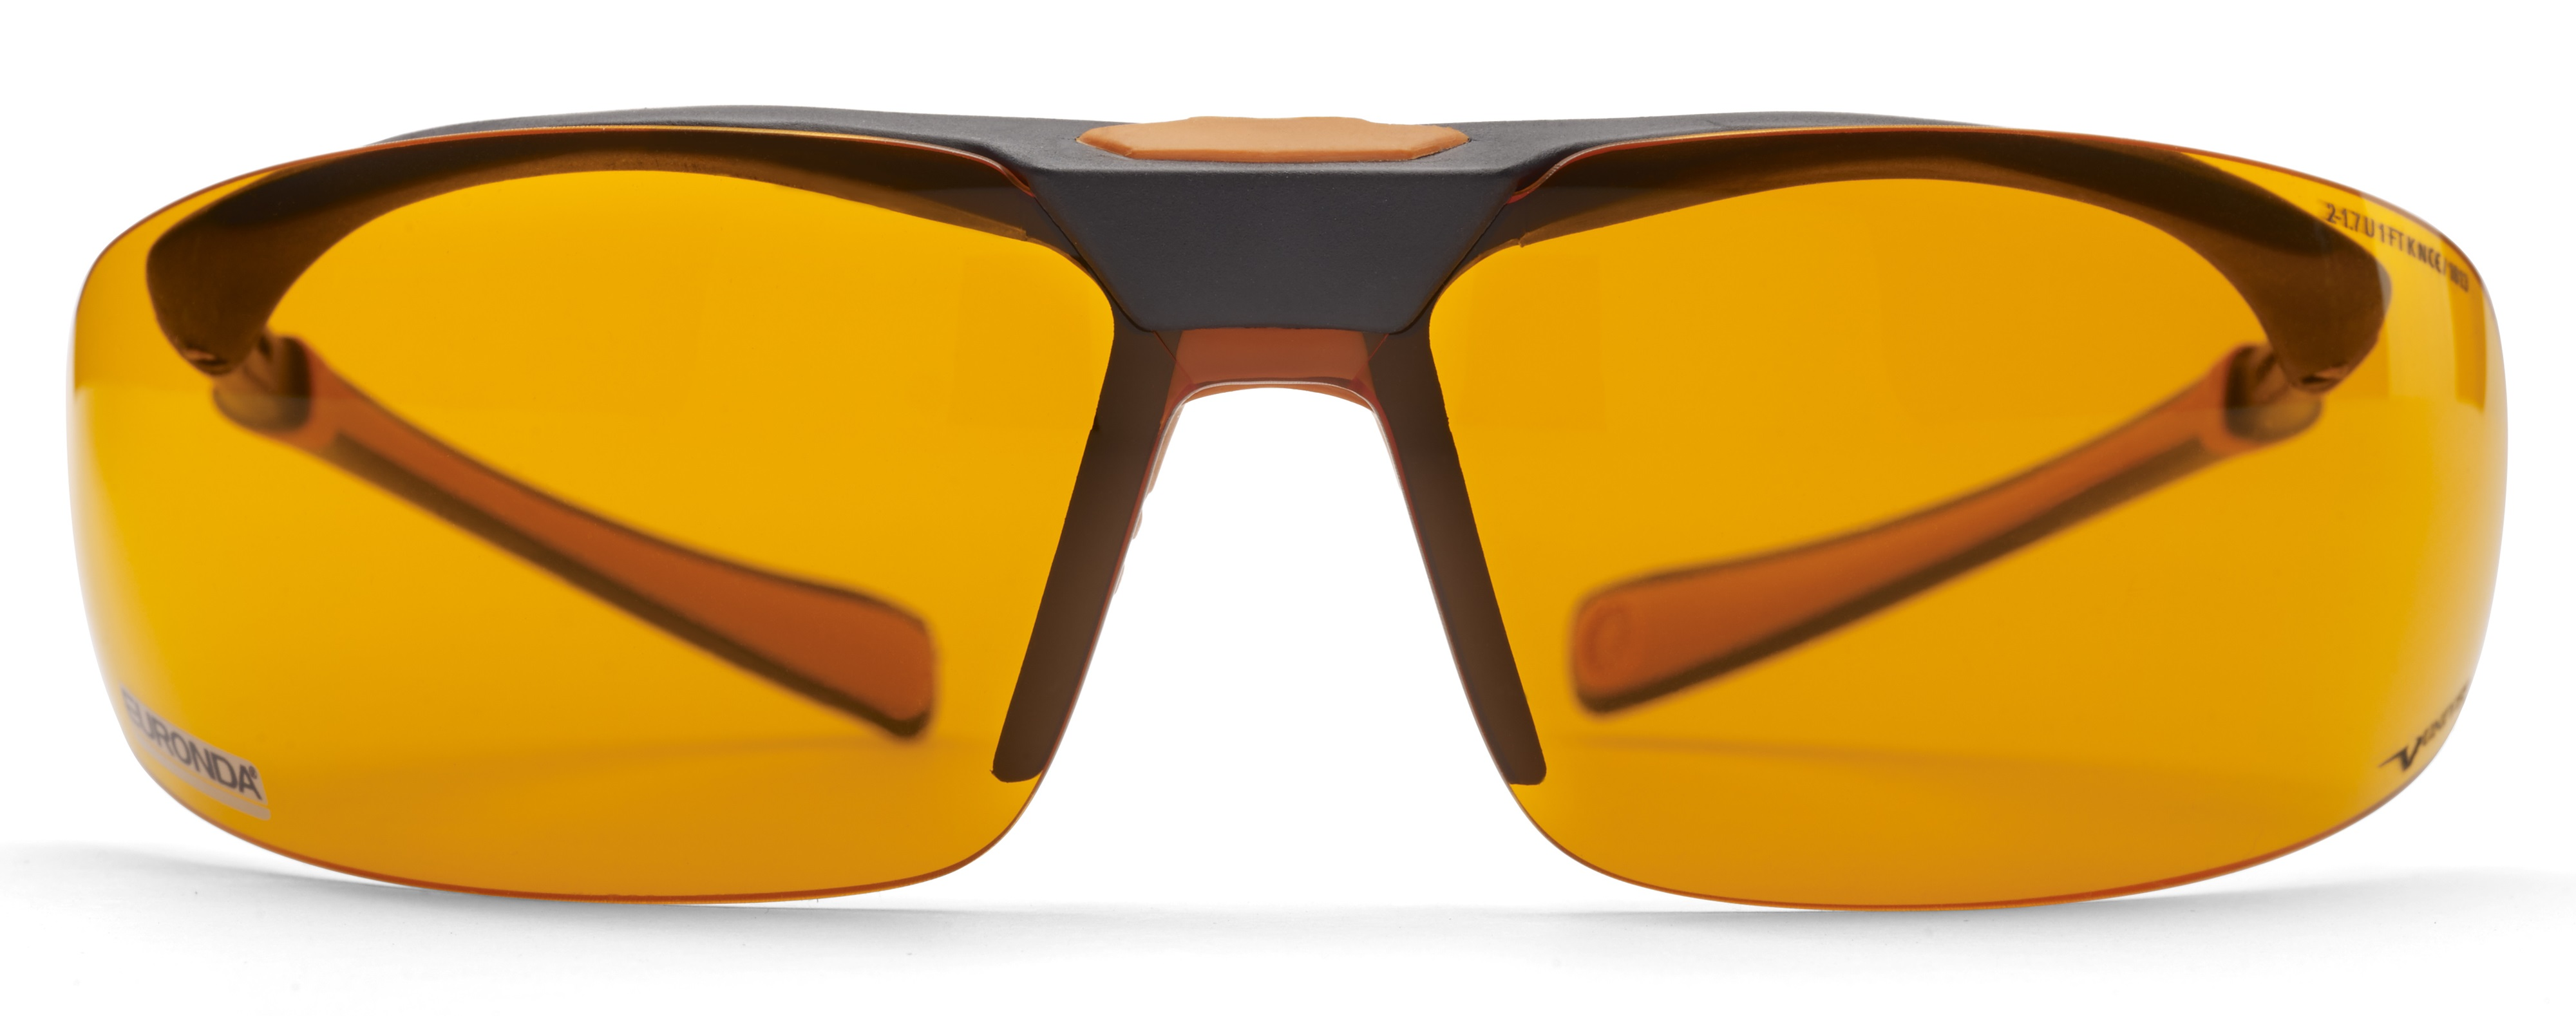 Glastrora Monoart Glasses Stretch orange védőszemüveg